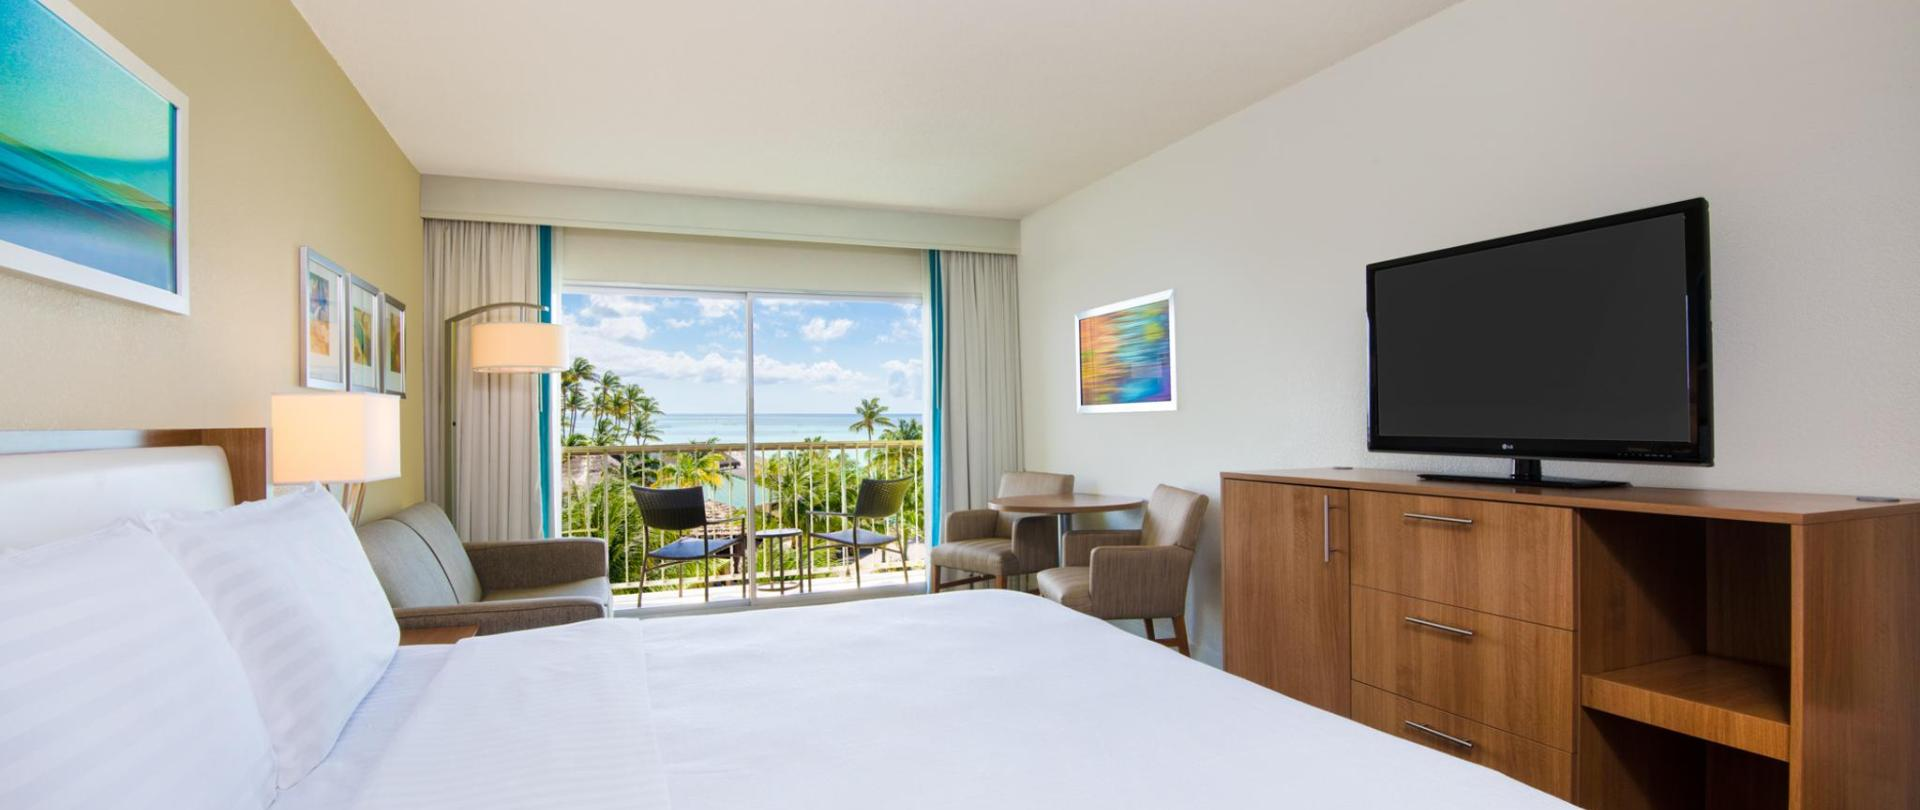 Aruba-Holiday-Inn-Partial-Ocean-View-King-Room.jpg